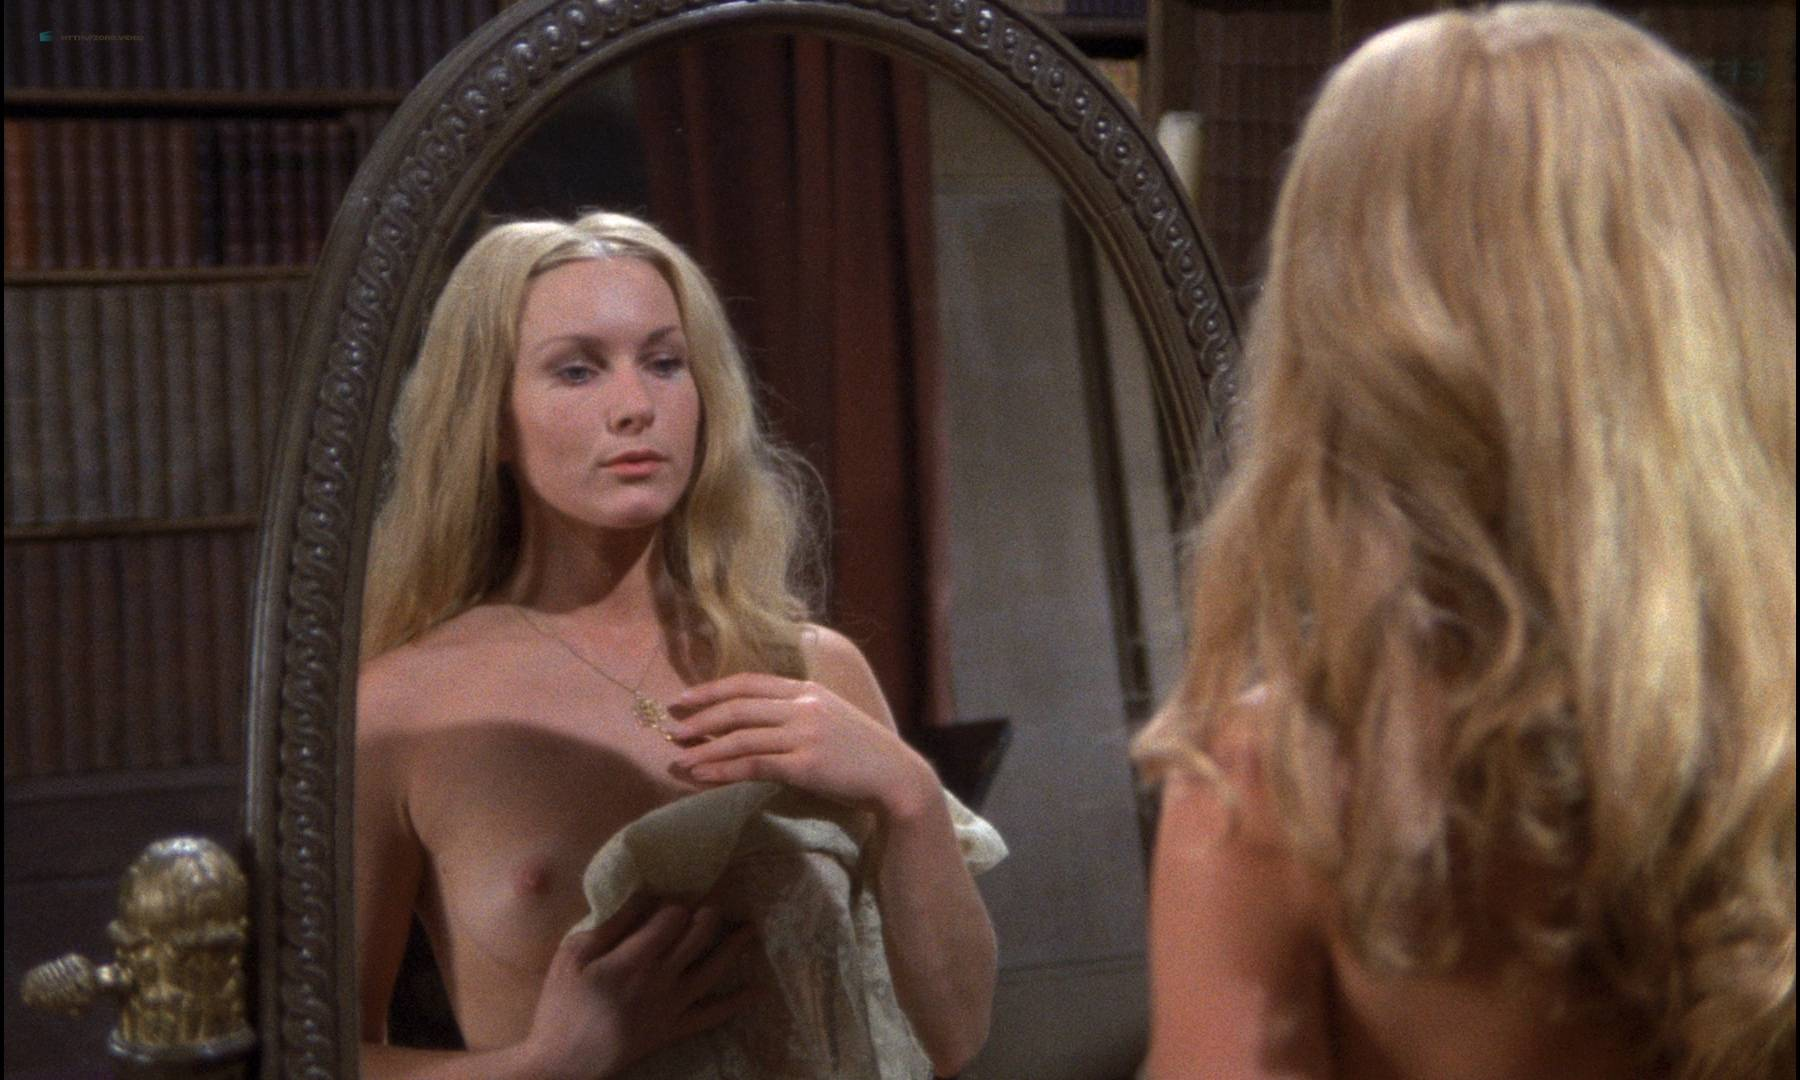 Gillian Hills nude topless Virginia Wetherell nude full frontal - Demons of the Mind (UK-1972) HD 1080p BluRay (3)